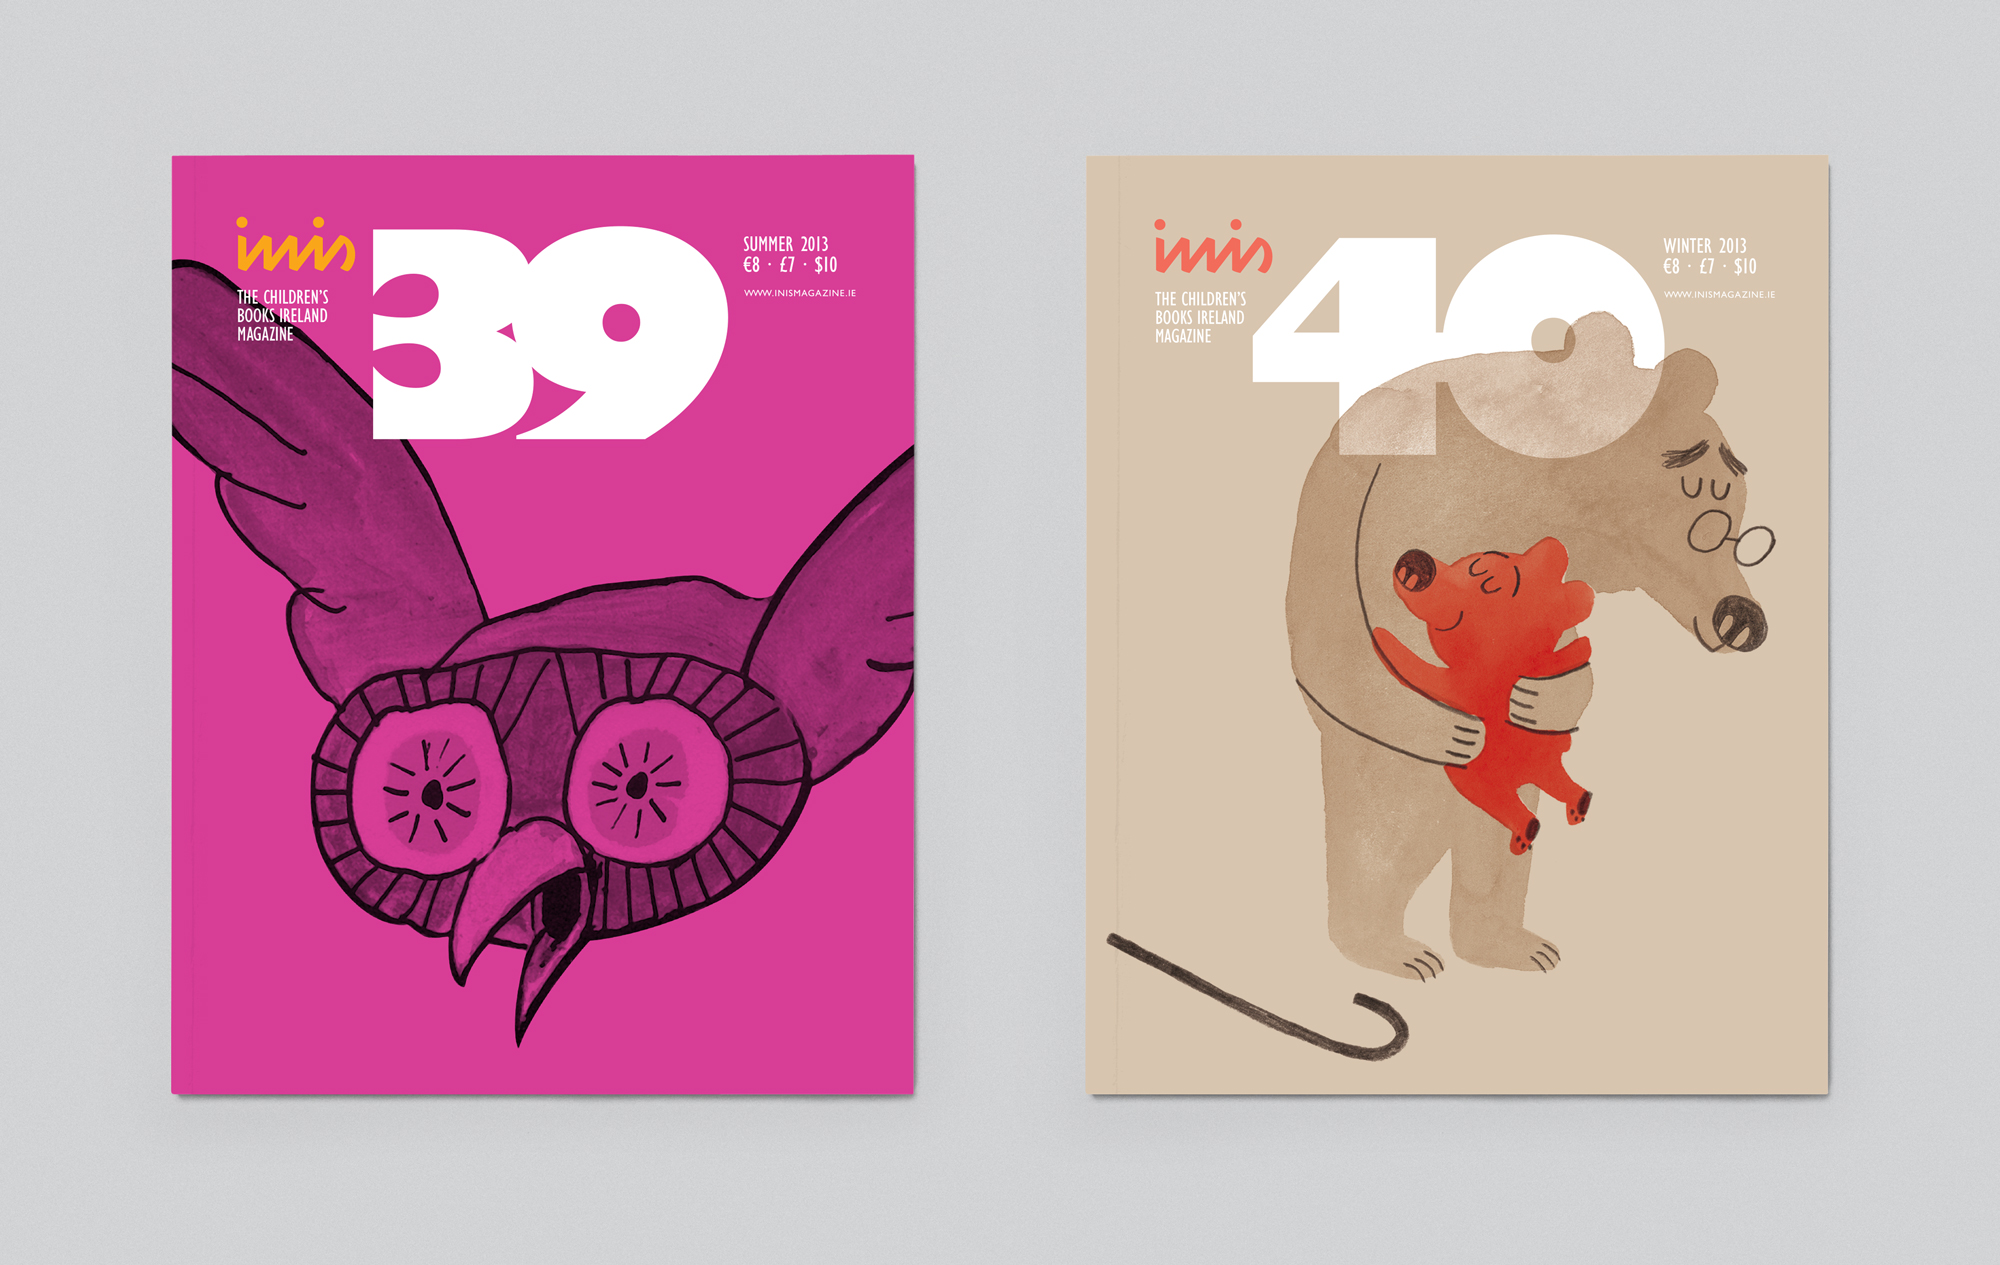 Cover image: Inis Magazine –Issues 39/40 (2013)